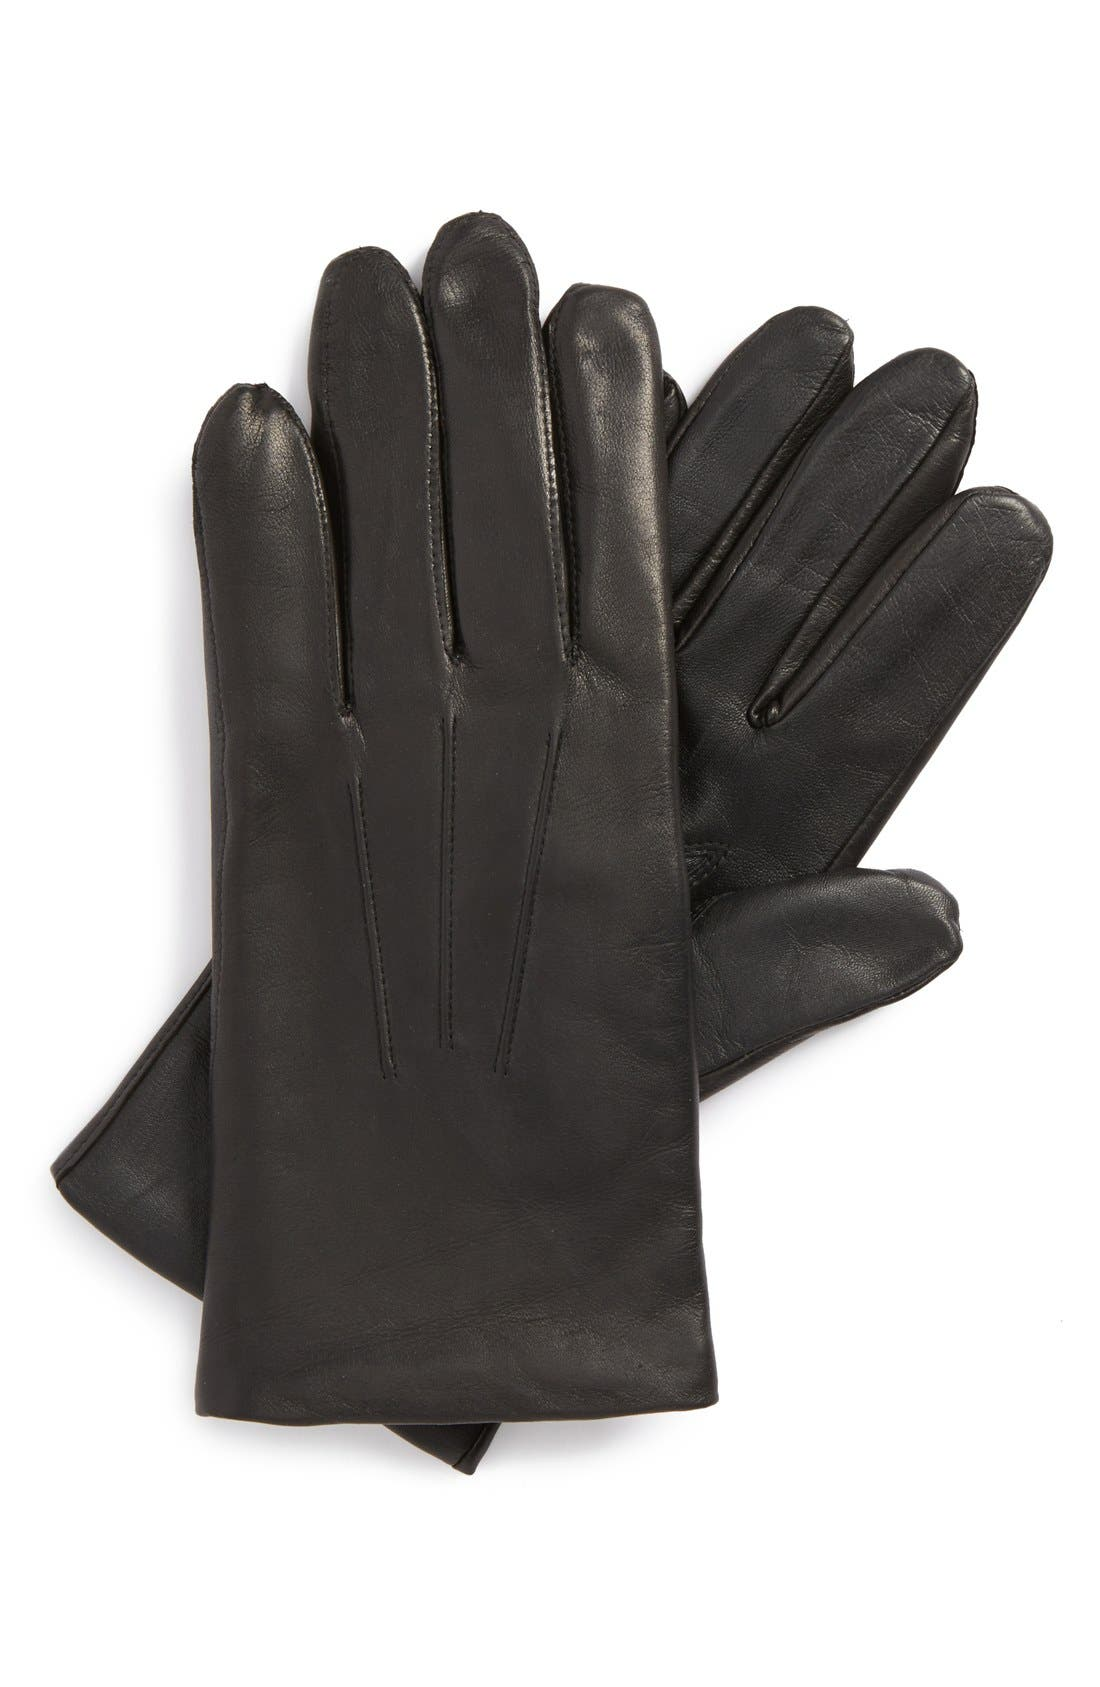 Leather Tech Gloves,                             Main thumbnail 1, color,                             001